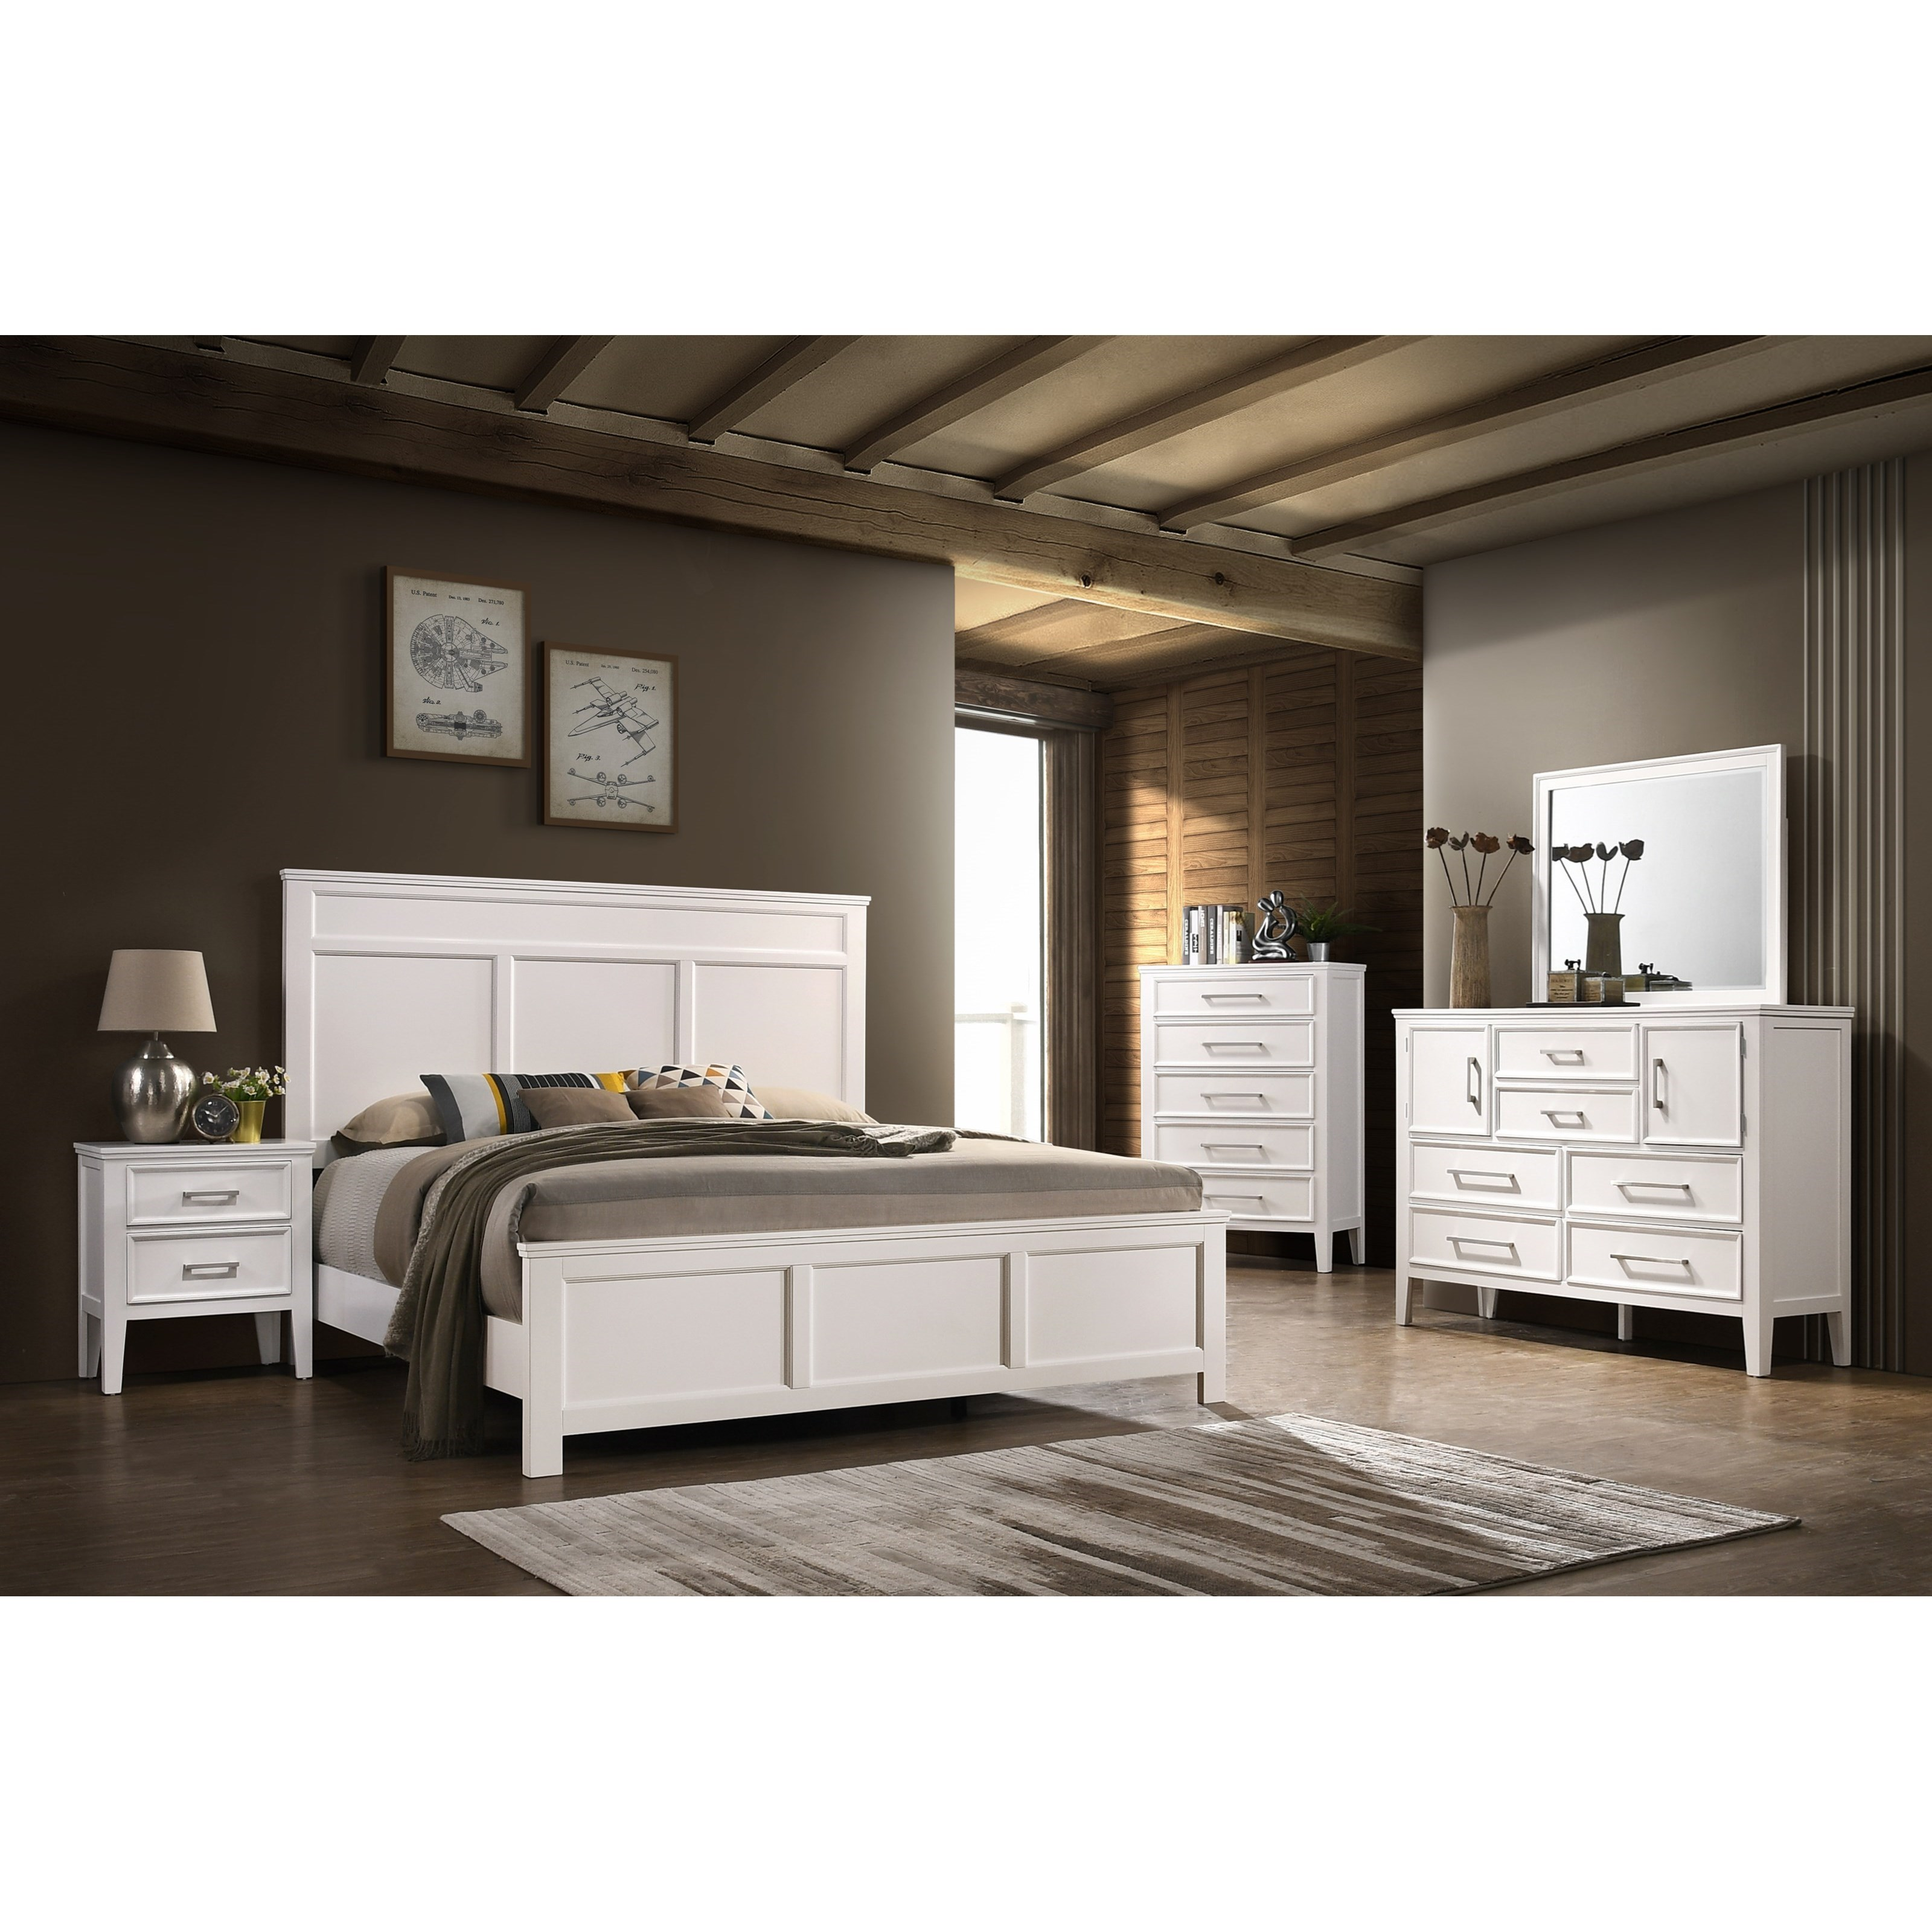 Andover California King Bedroom Group by New Classic at H.L. Stephens